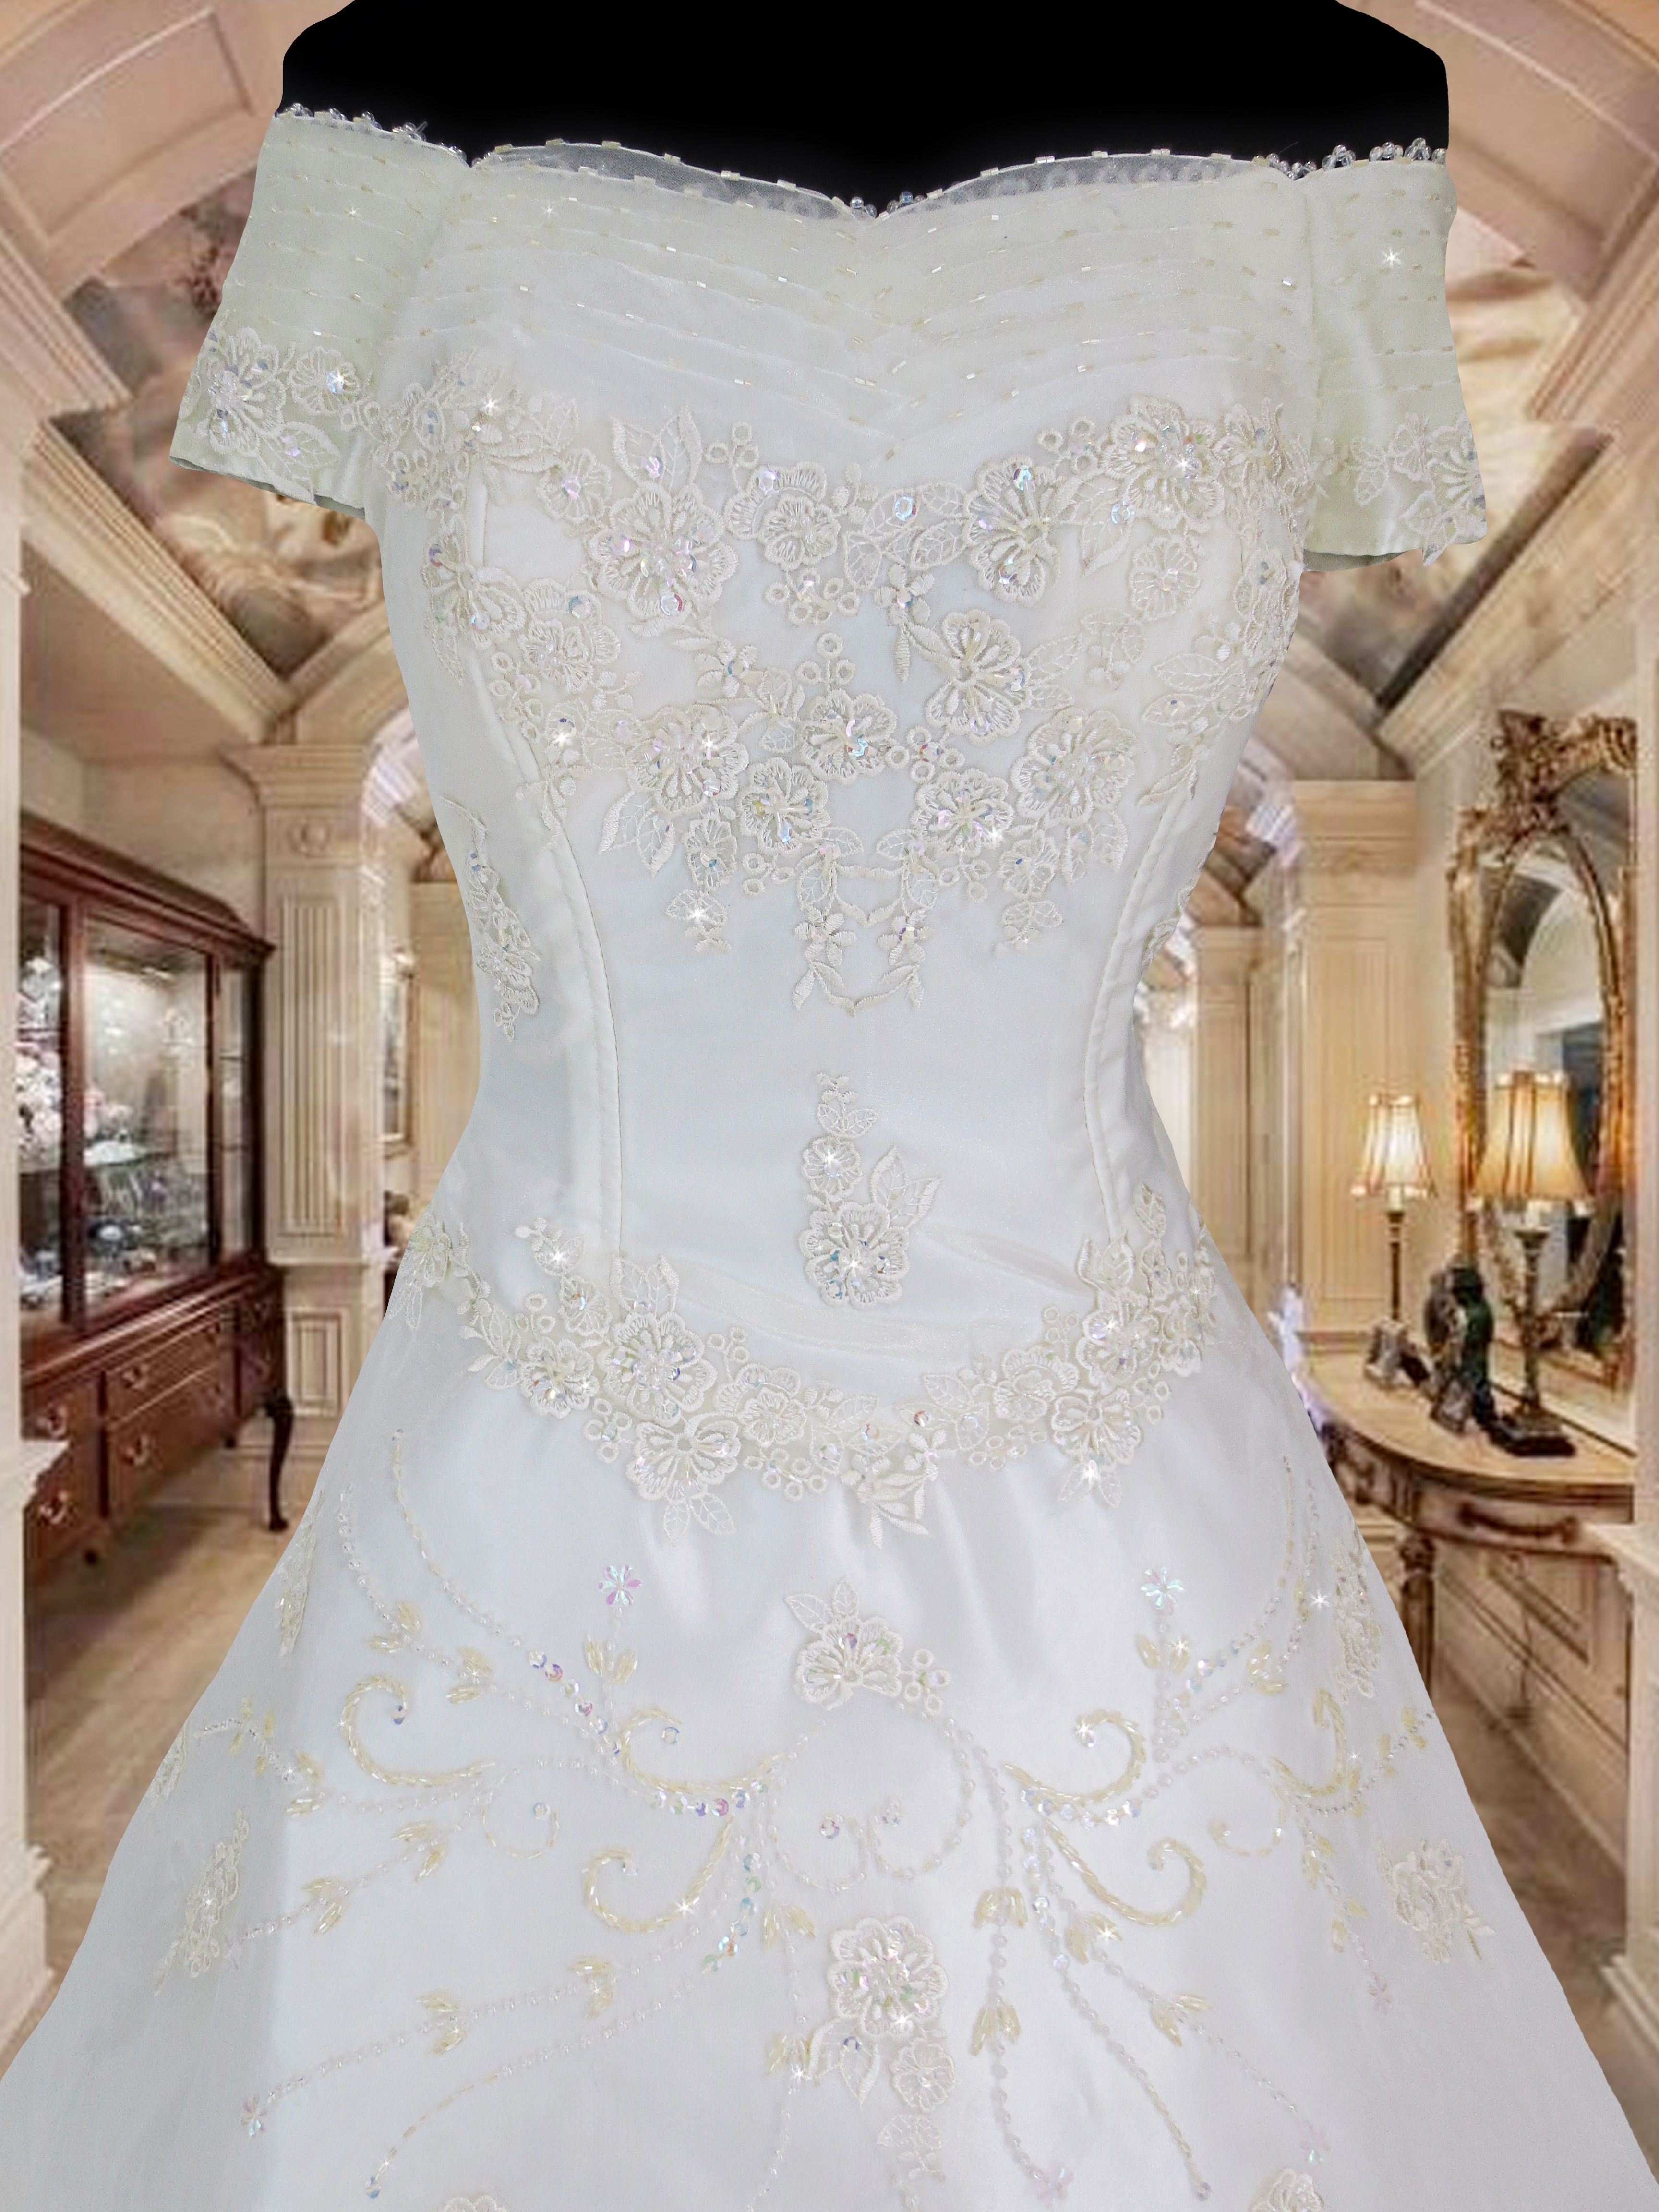 white bridal gown wedding gown for rent Php3,000. www.gownforent.com ...